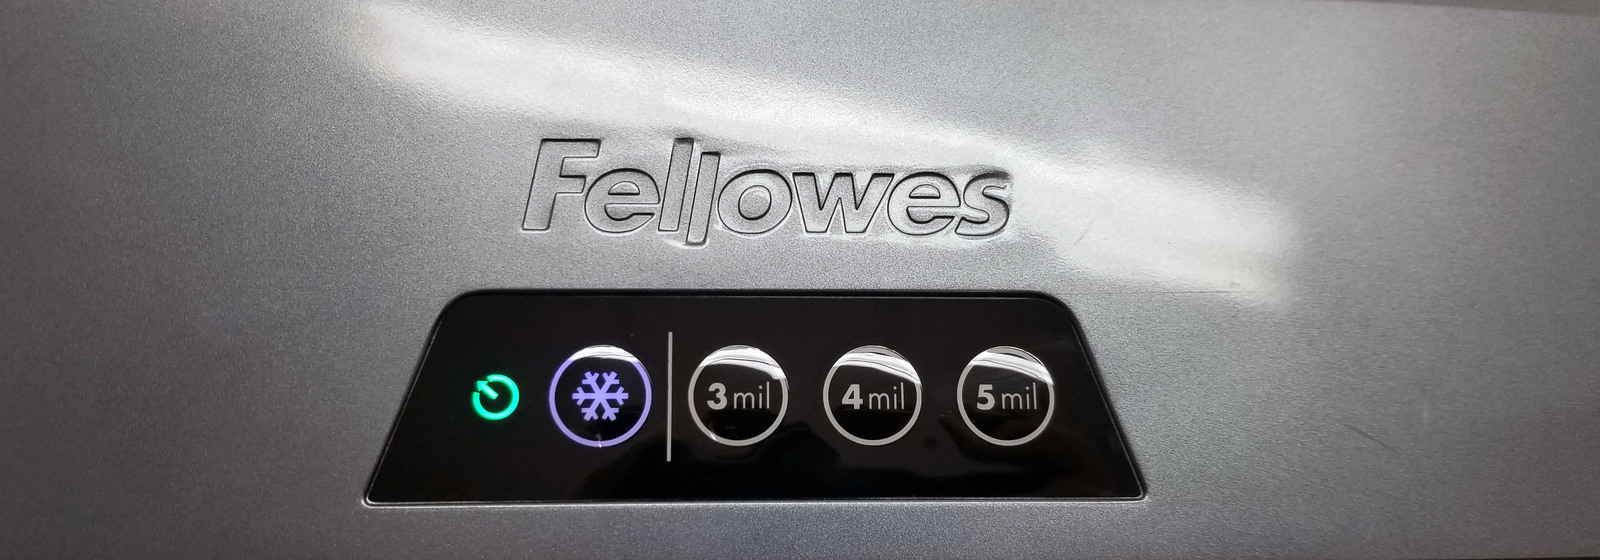 "Fellowes Saturn 2 125, 3 to 5mil 12.5"" Pouch Laminator Bin:14"